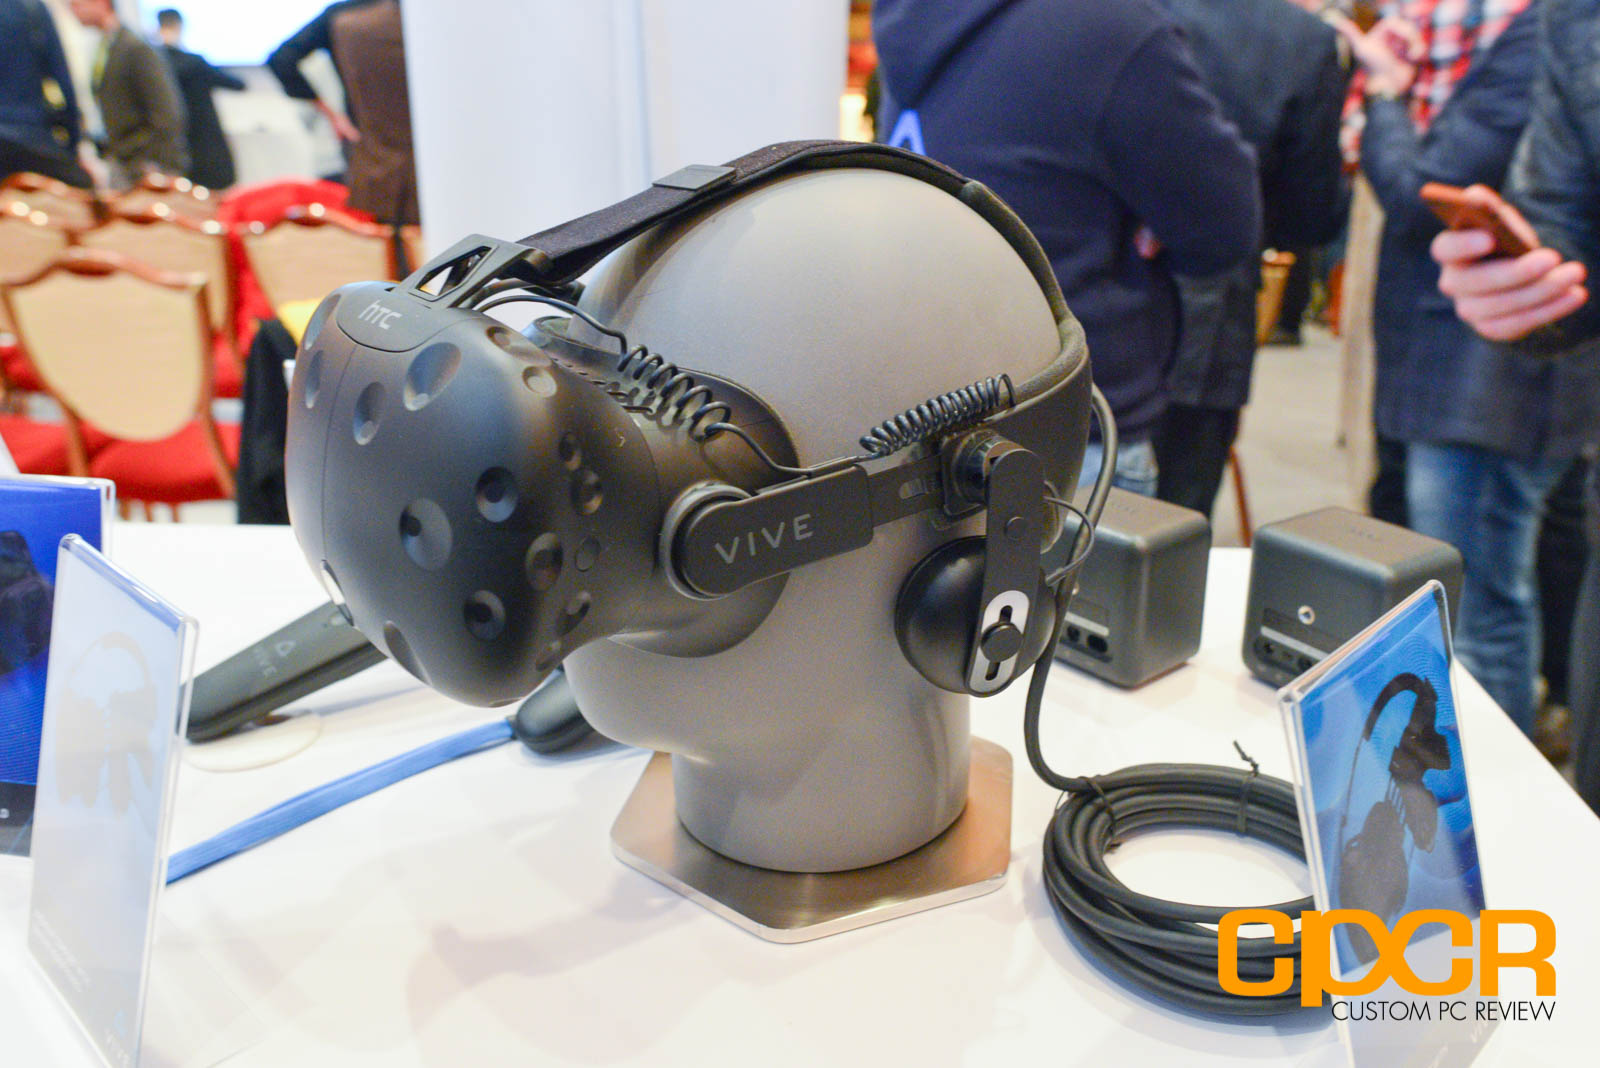 HTC Vive Tracker transforms real world objects into virtual reality